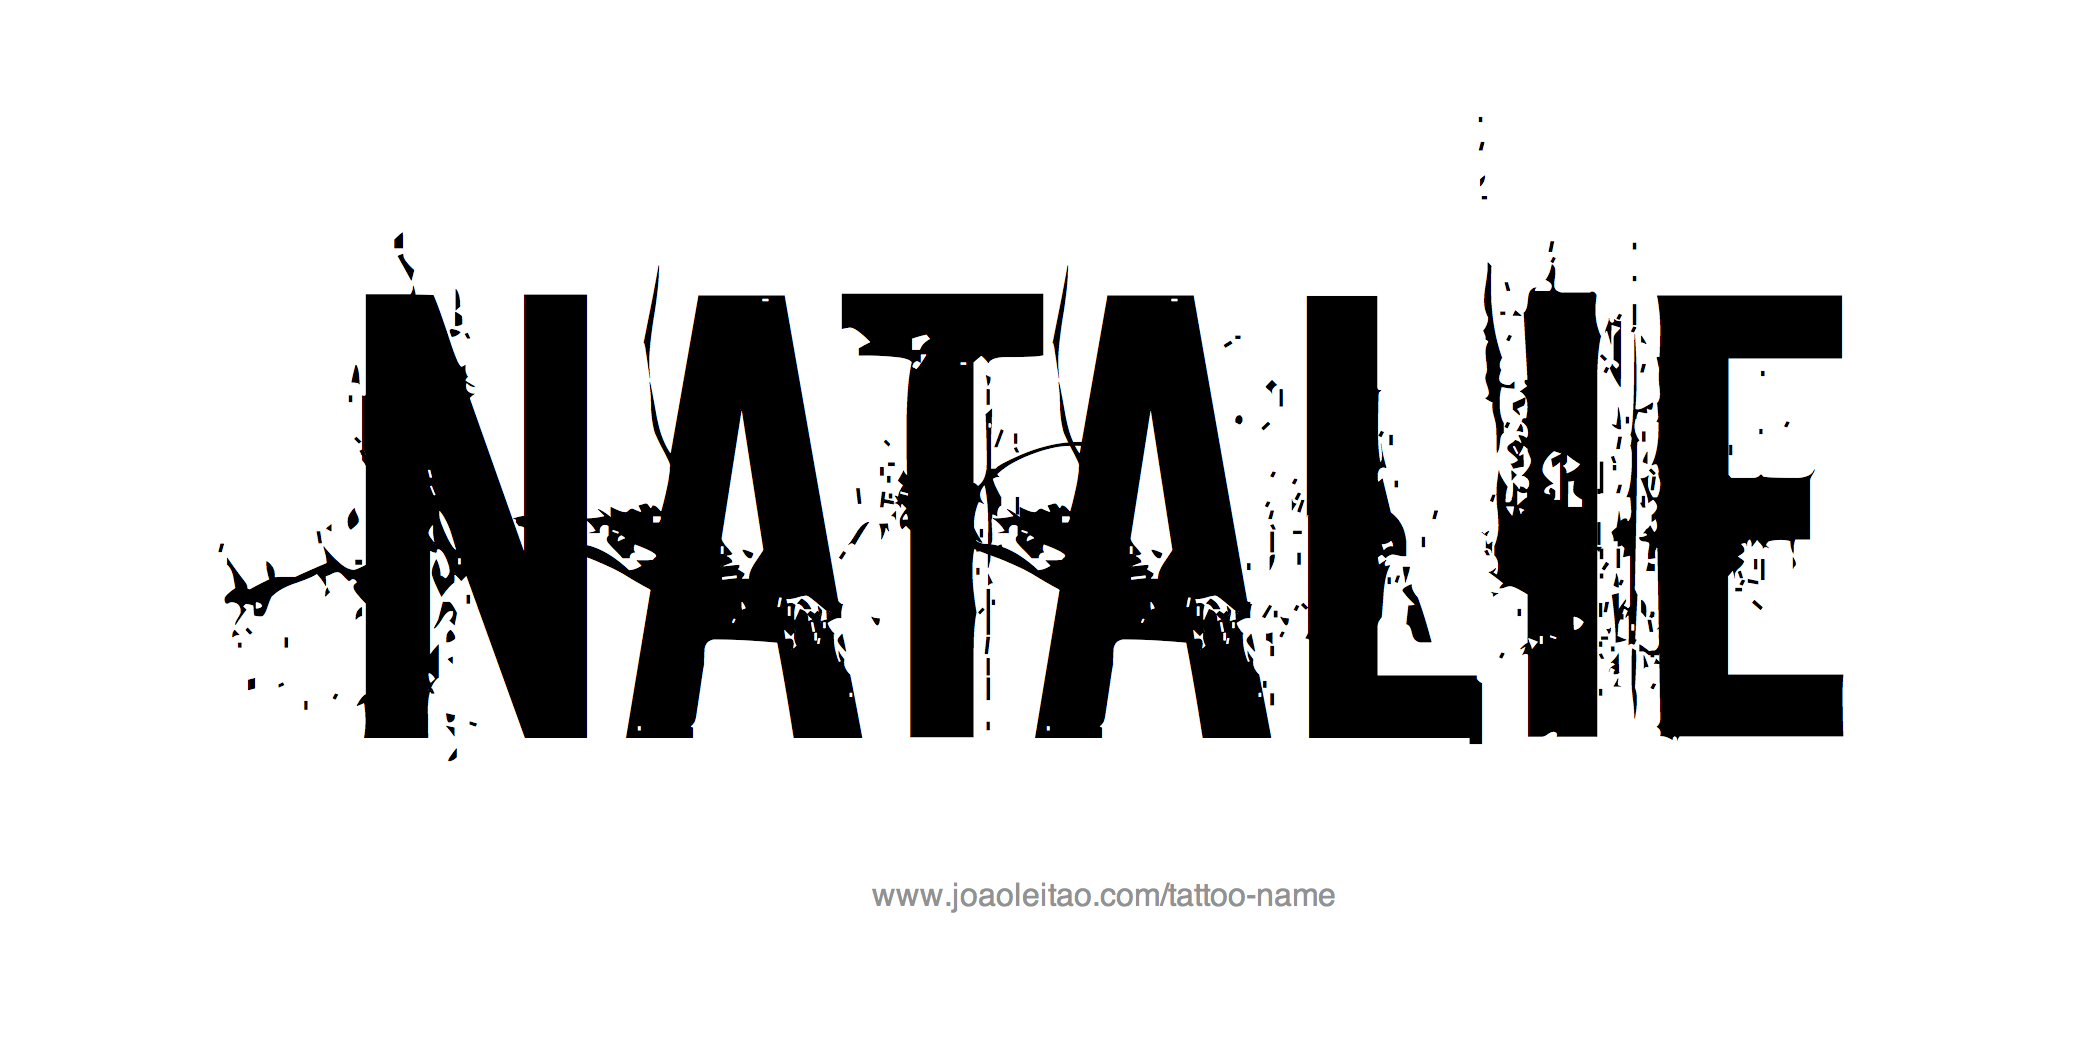 Tattoo Design Name Natalie